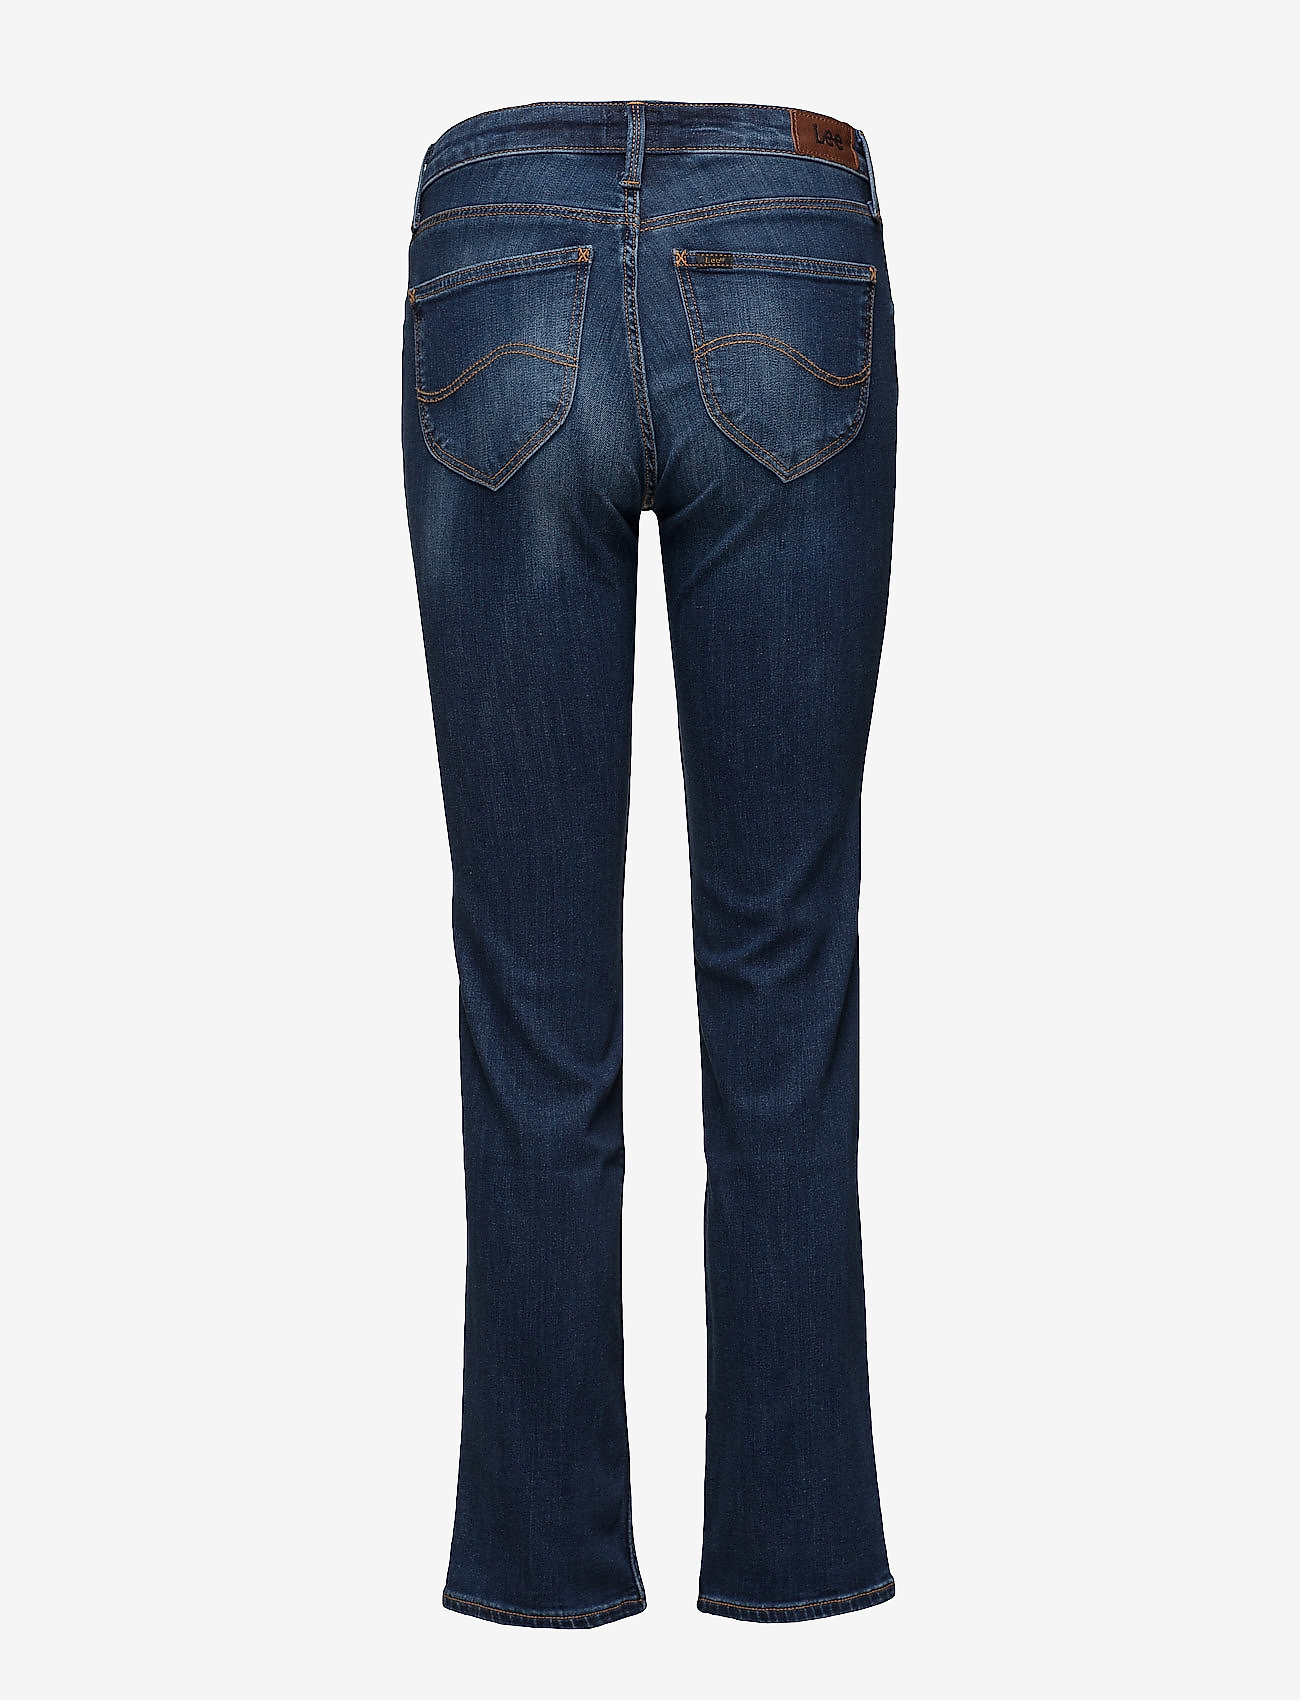 Lee Jeans - MARION STRAIGHT - straight jeans - night sky - 1